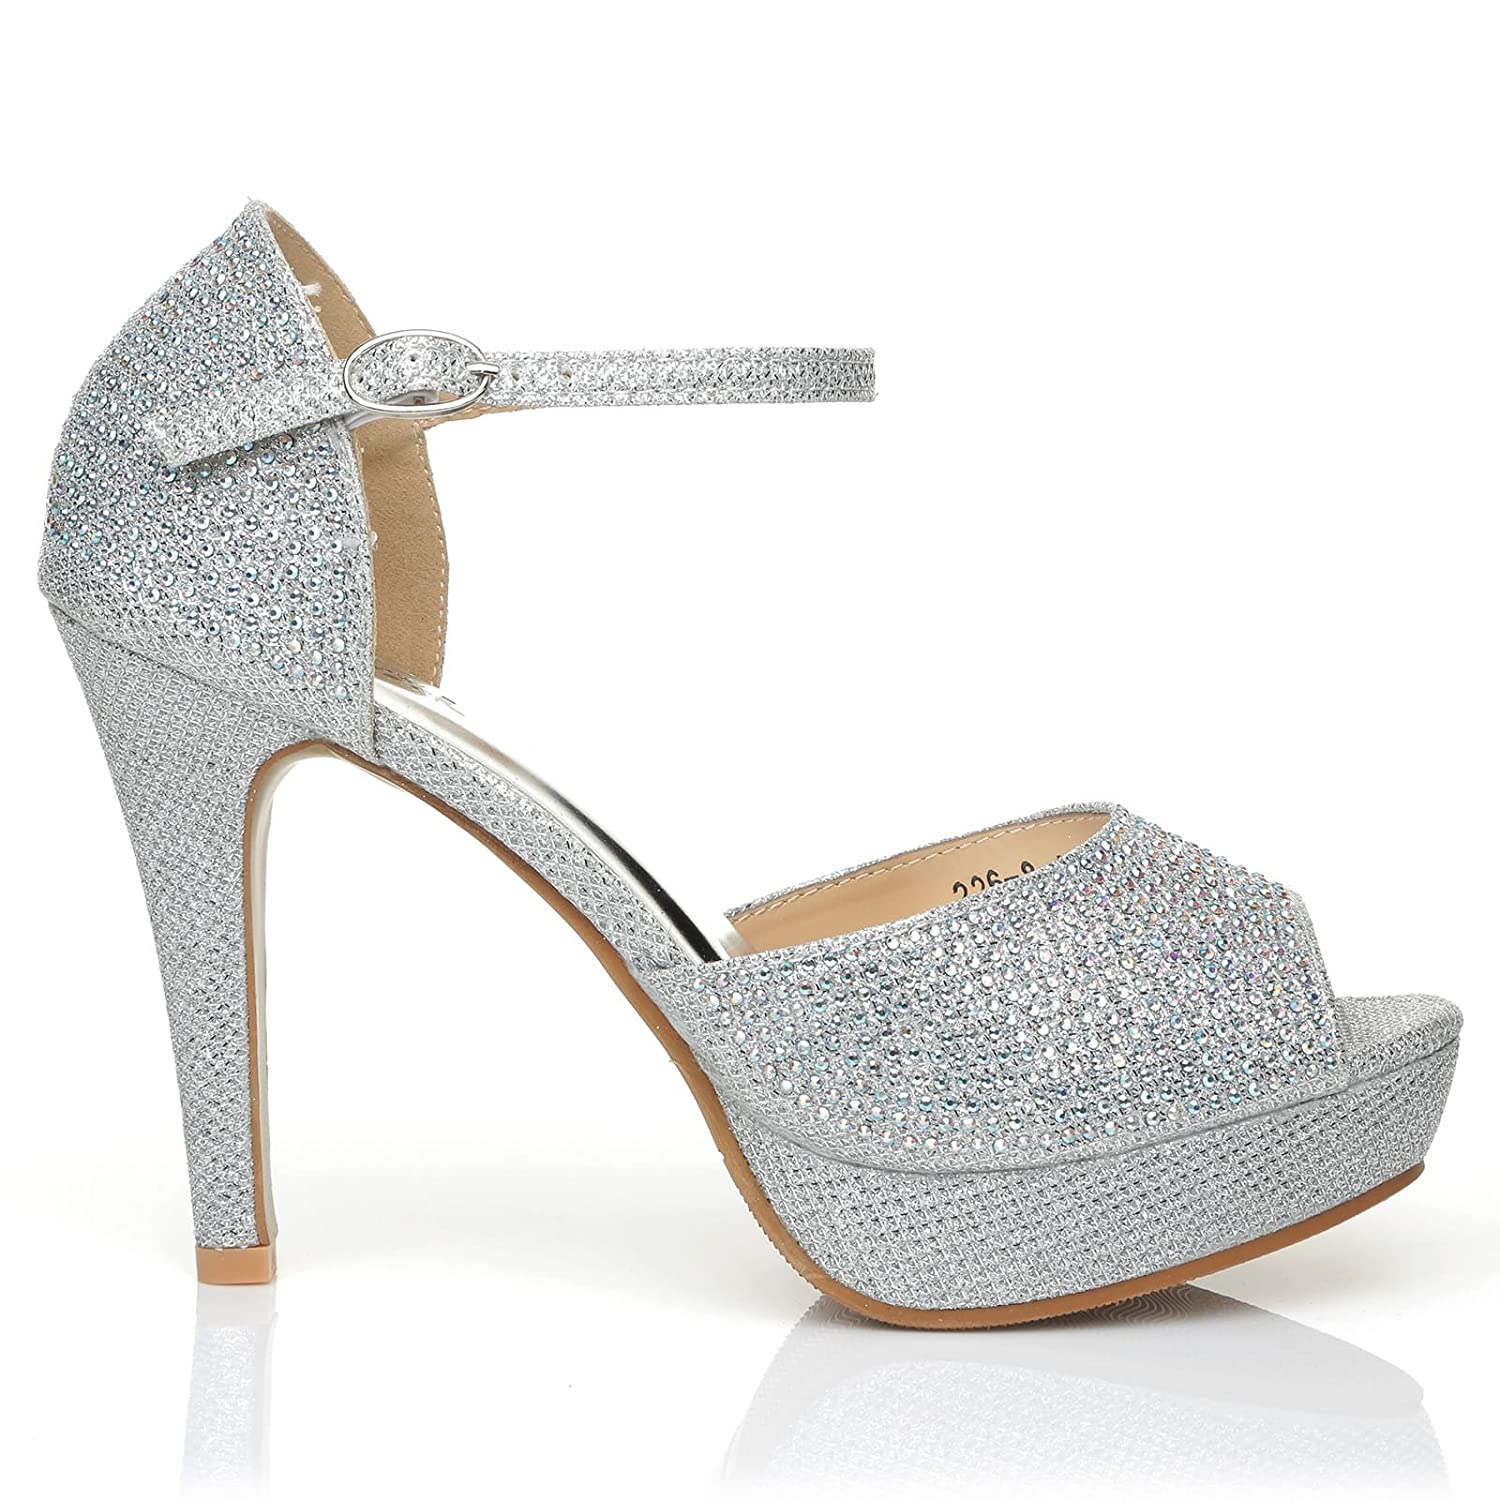 ShuWish UK Glamour Silver Diamante Encrusted Ankle Strap Platform Peep Toe High Heels: Amazon.co.uk: Shoes & Bags